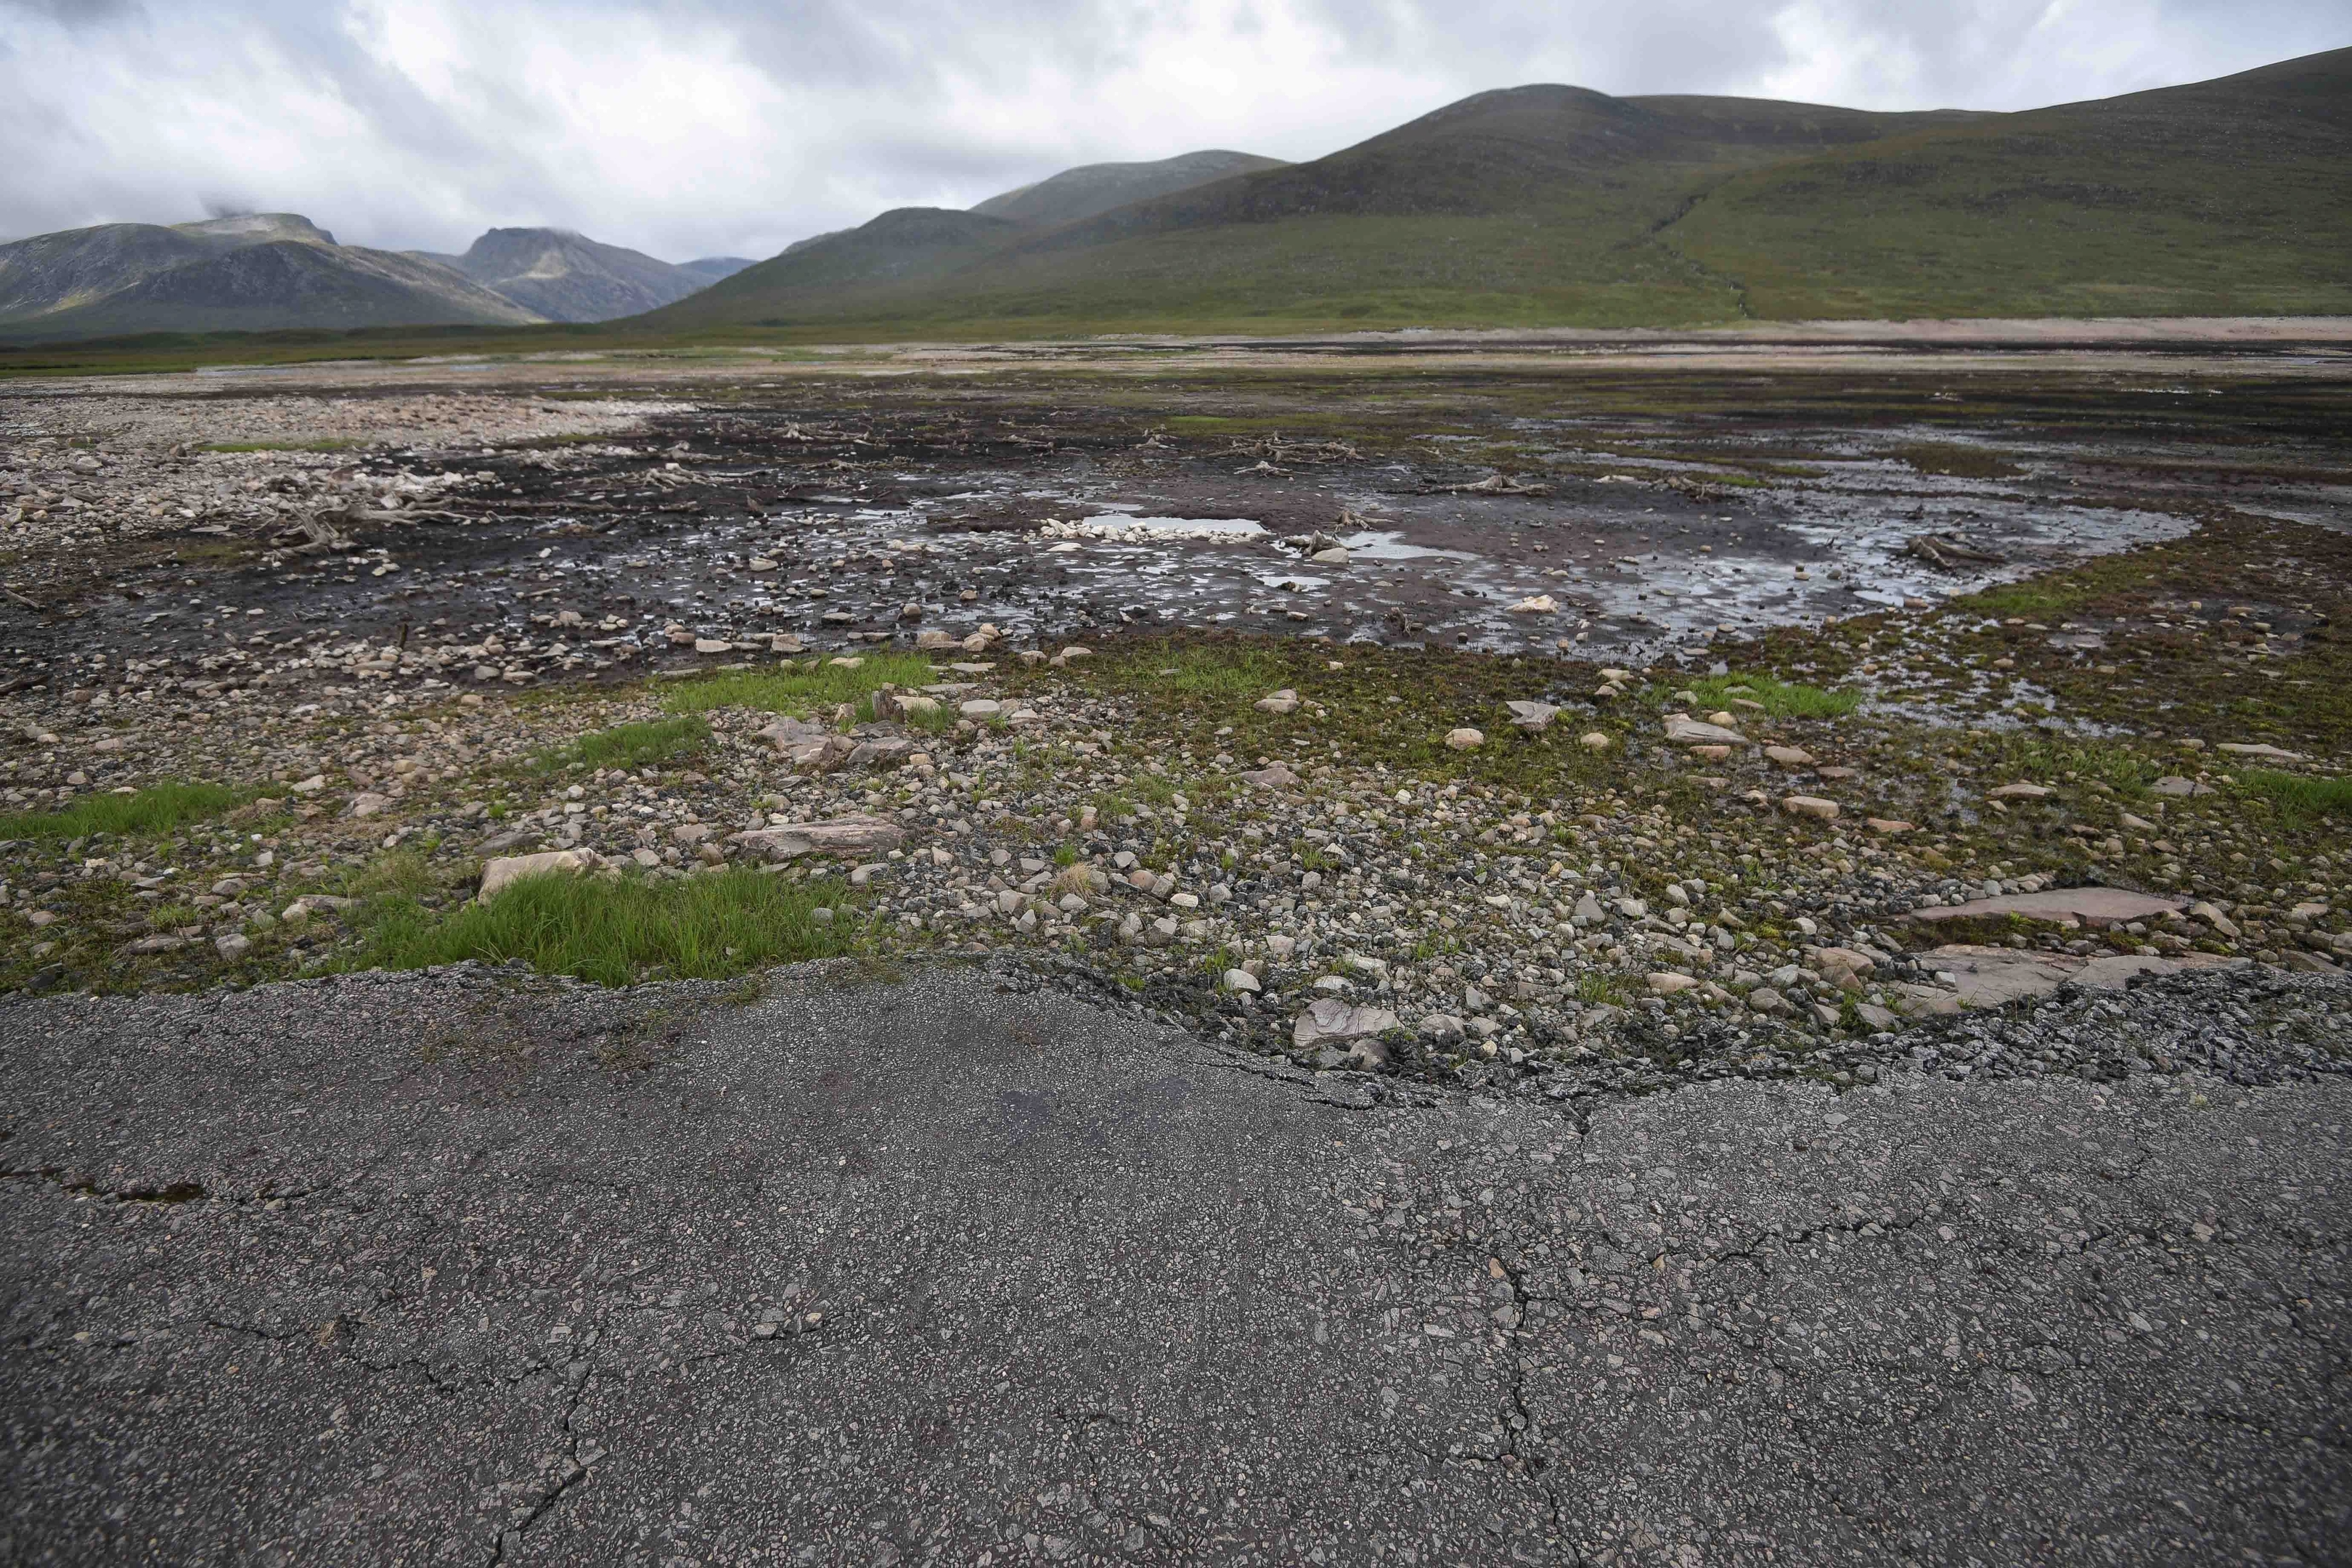 The dried out bed of Loch Glascarnoch